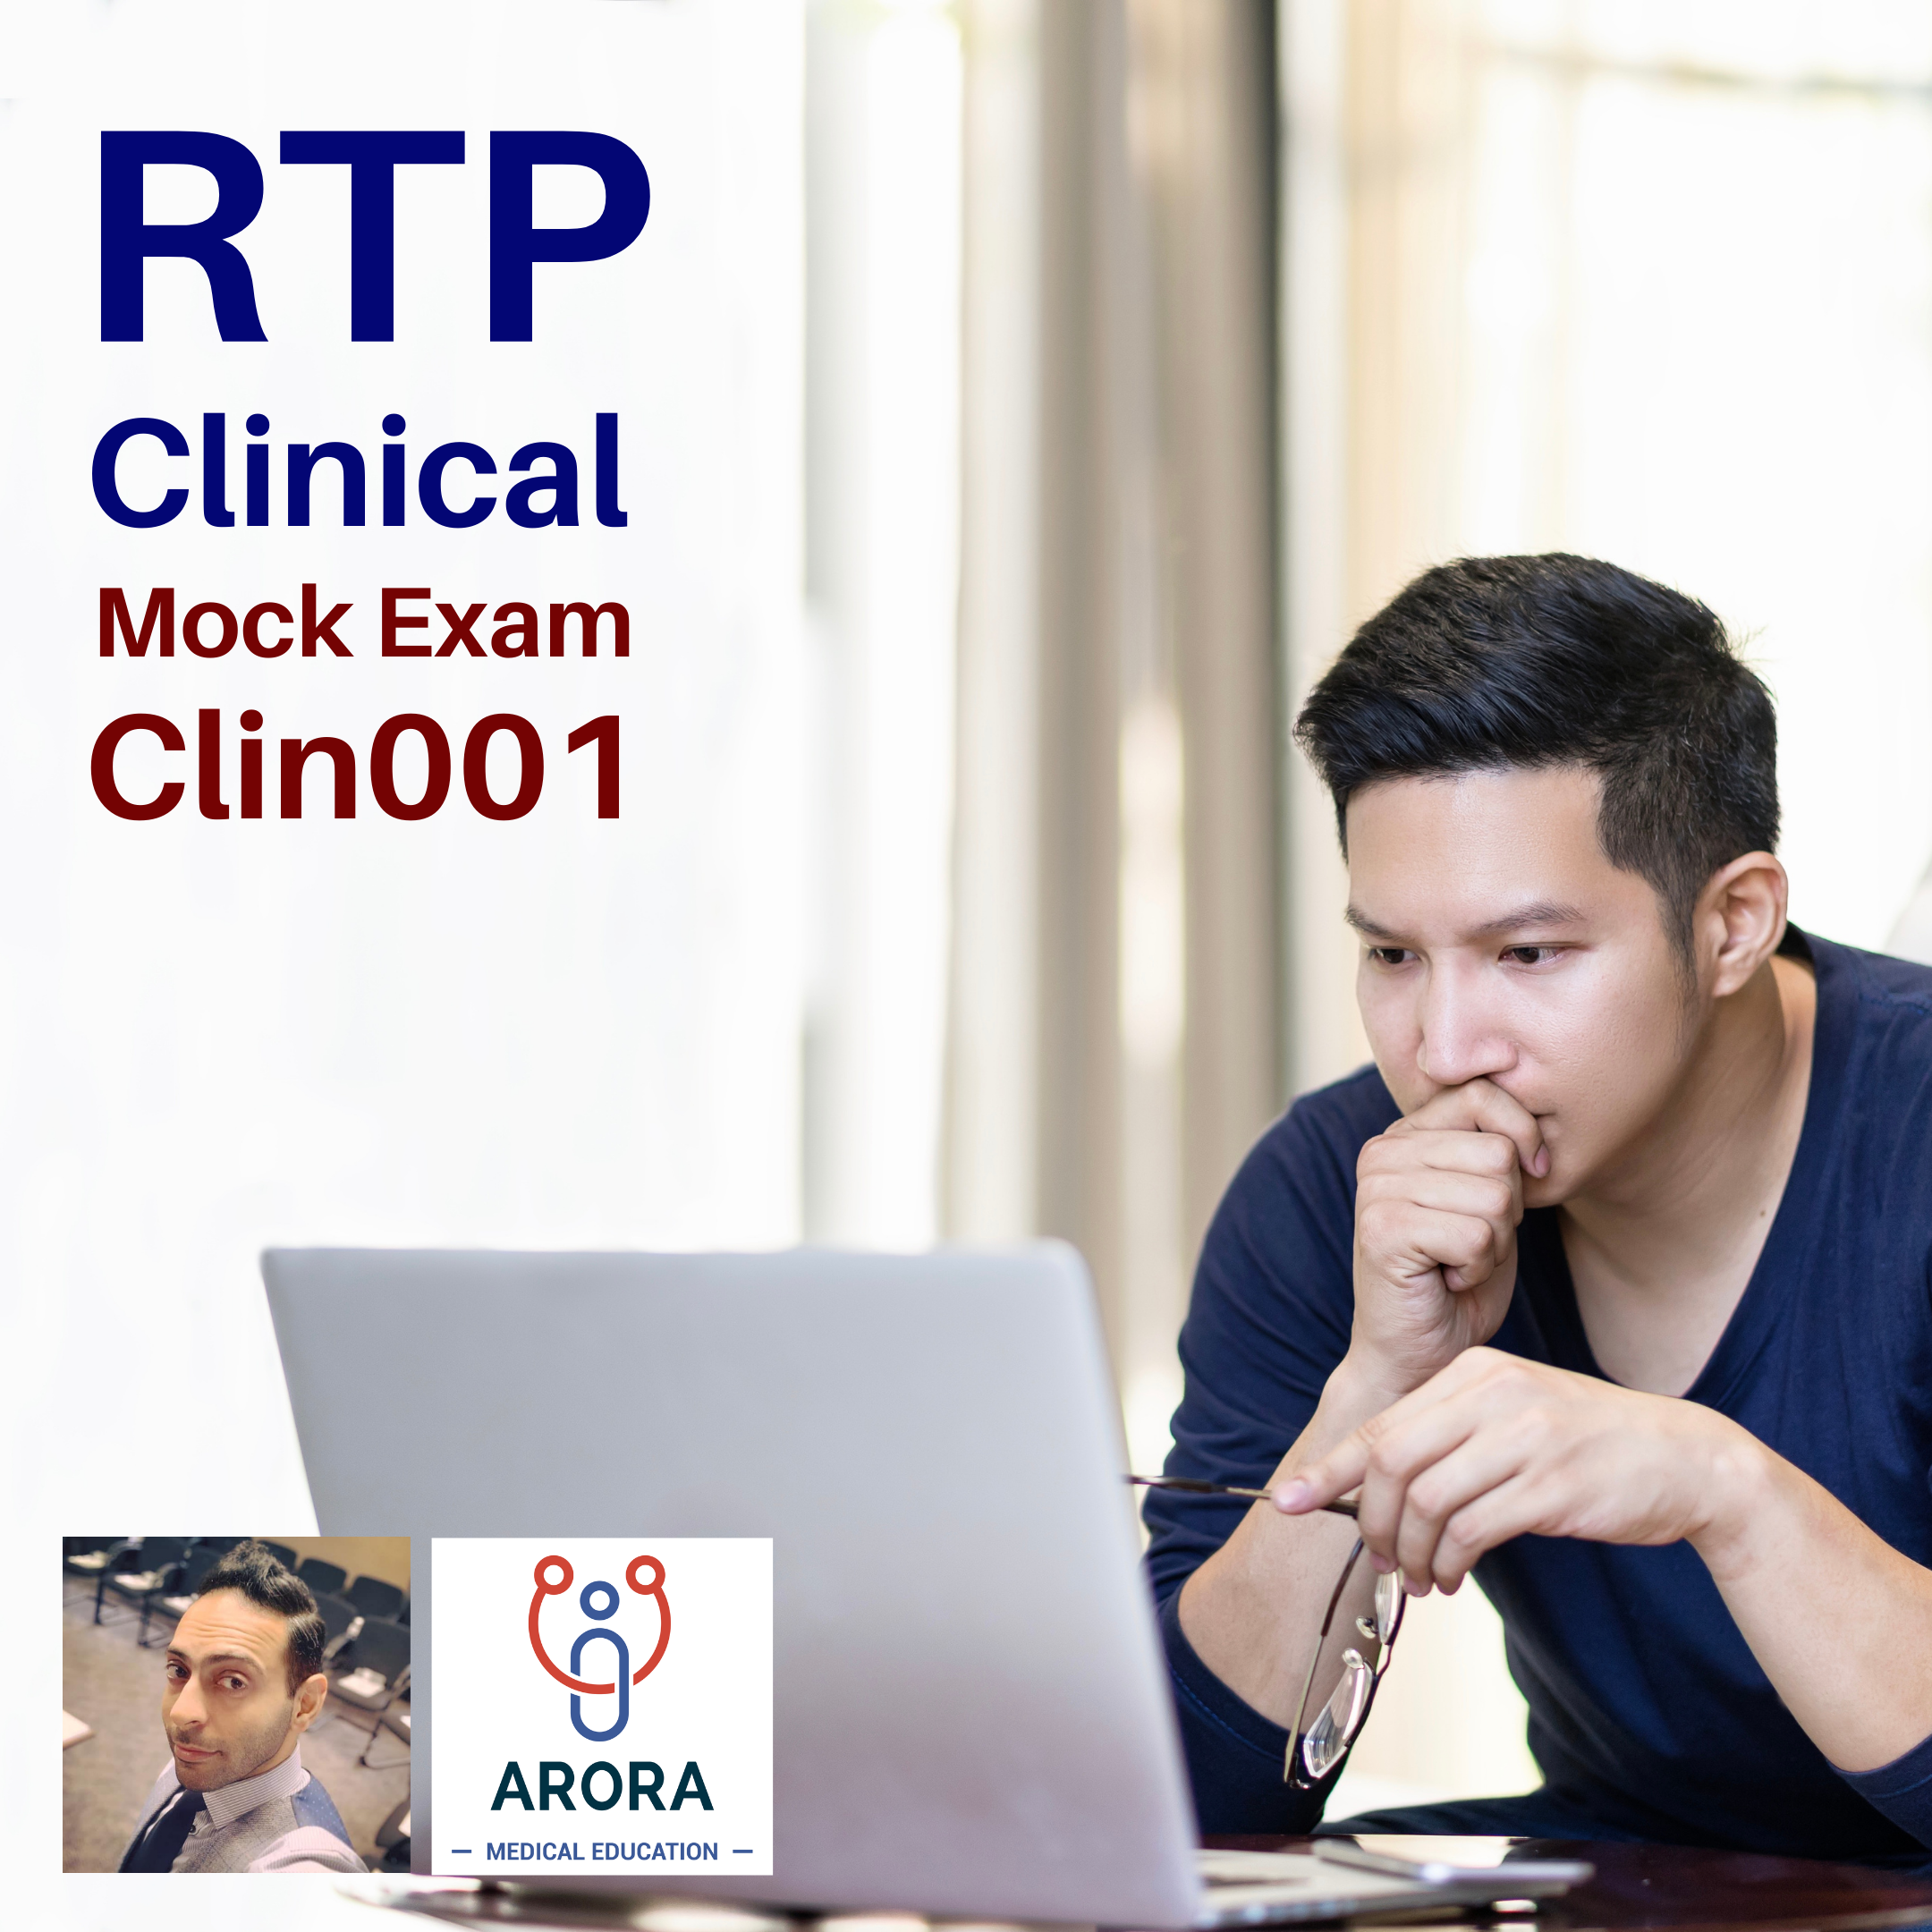 RTP Clin 001 - MRCGP CSA, AKT and PLAB Exam Courses and Online Webinars - Arora Medical Education